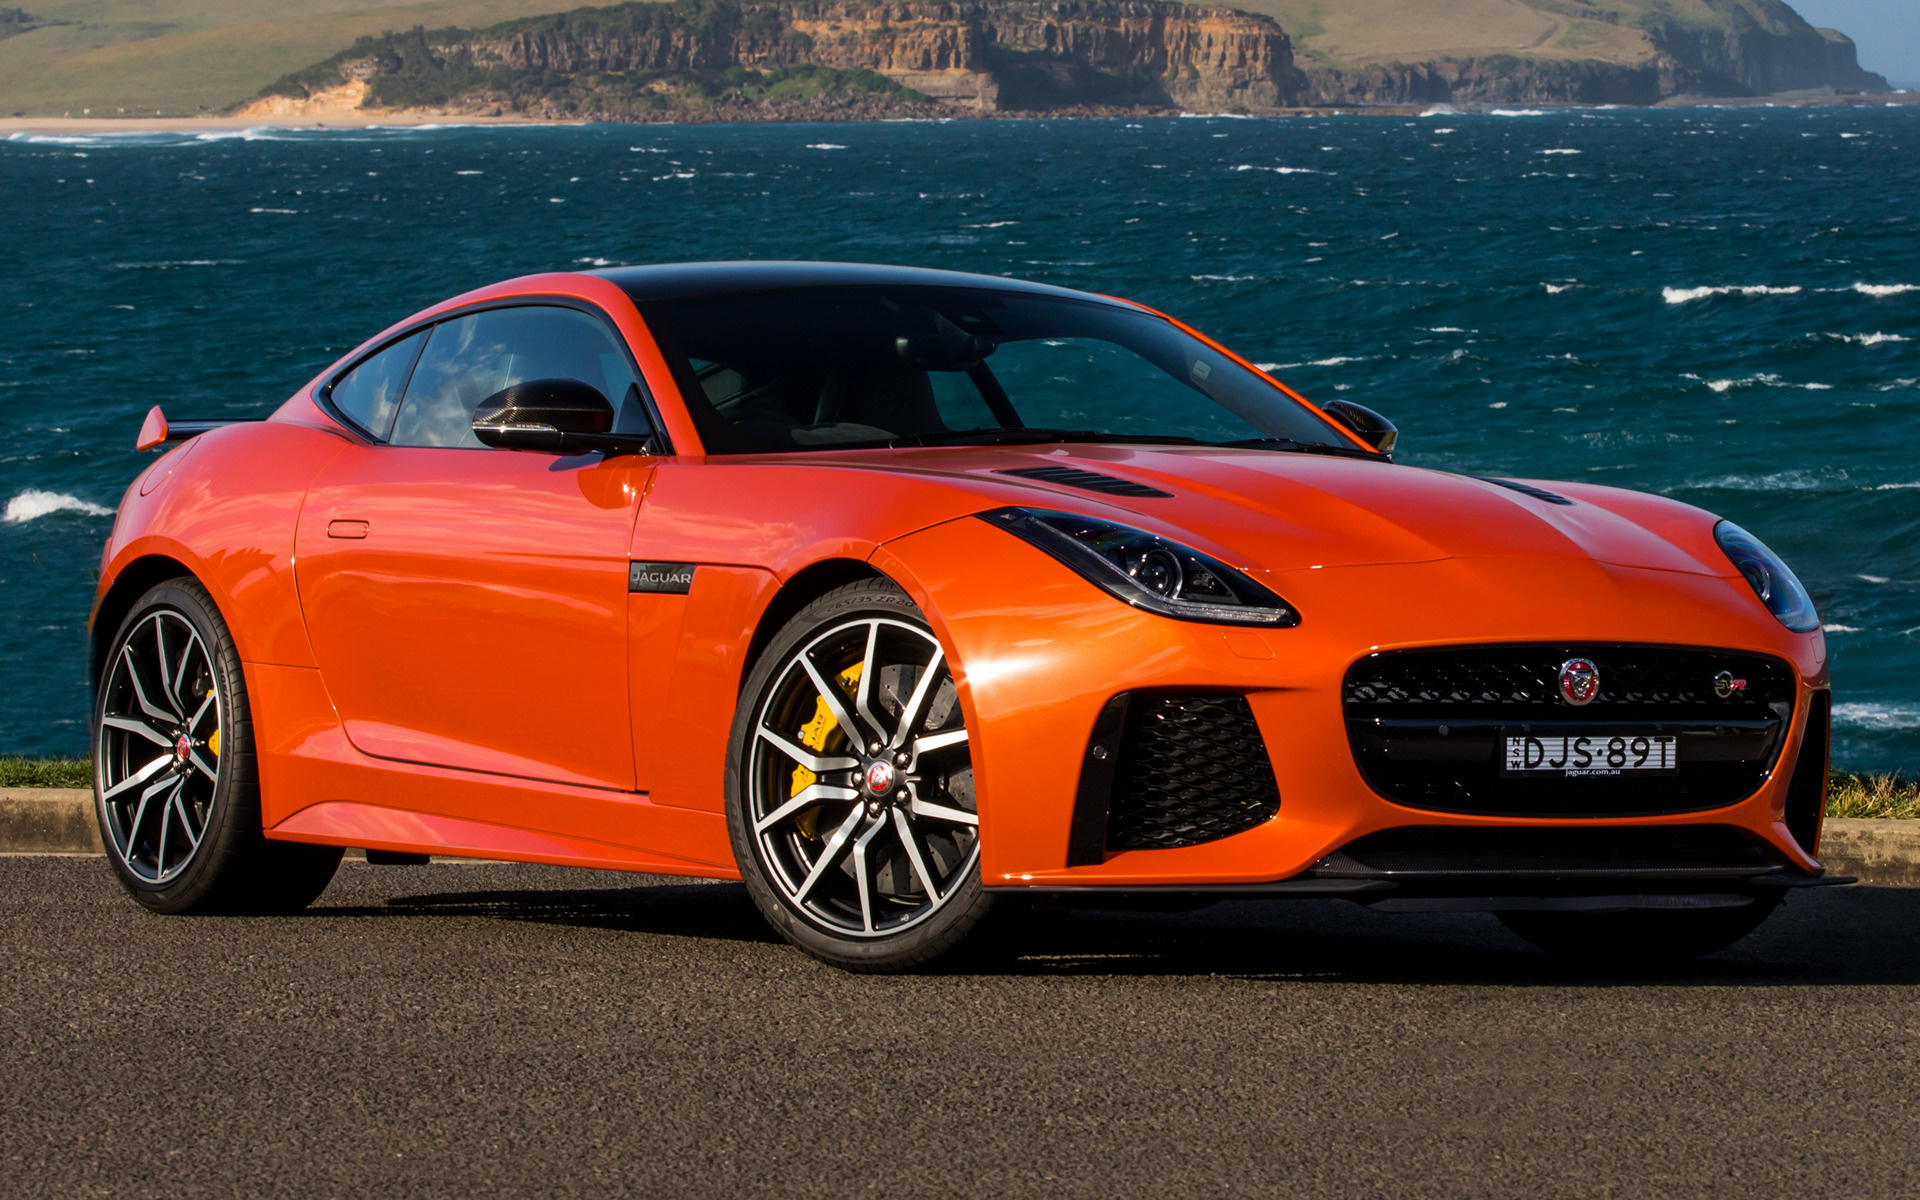 Genesis Coupe 2016 >> 2016 Jaguar F-Type SVR Coupe (AU) - Wallpapers and HD Images | Car Pixel